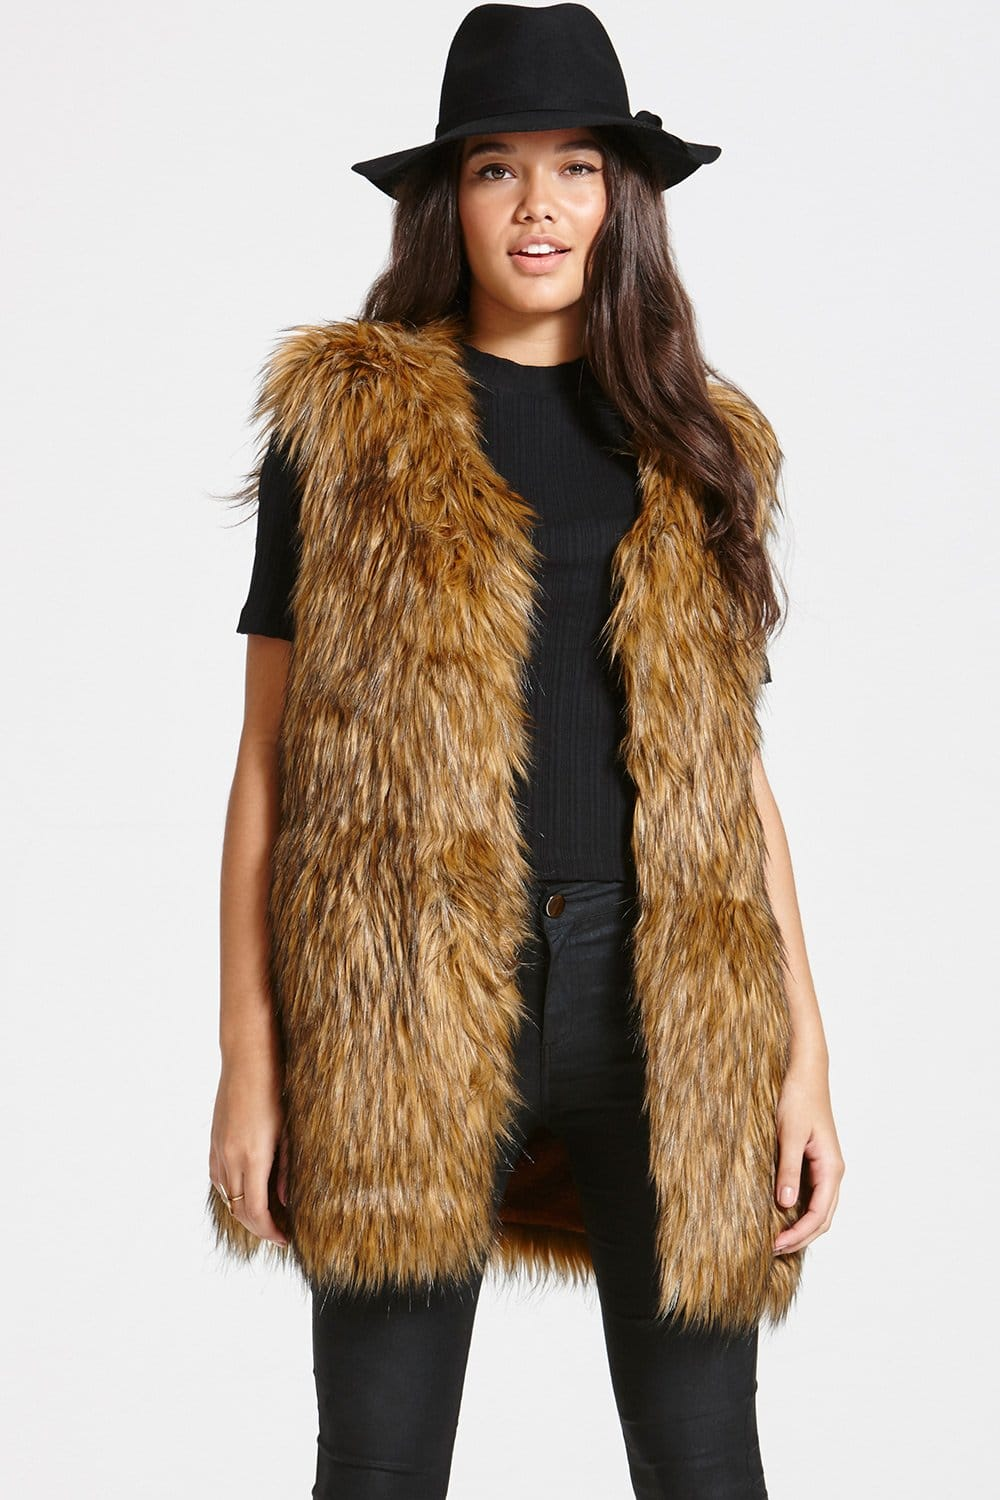 As good as the real deal. This faux-fur gilet is designed in a panelled finish that replicates authentic fur. Clean, simple and versatile, this layering tool can be worn over .